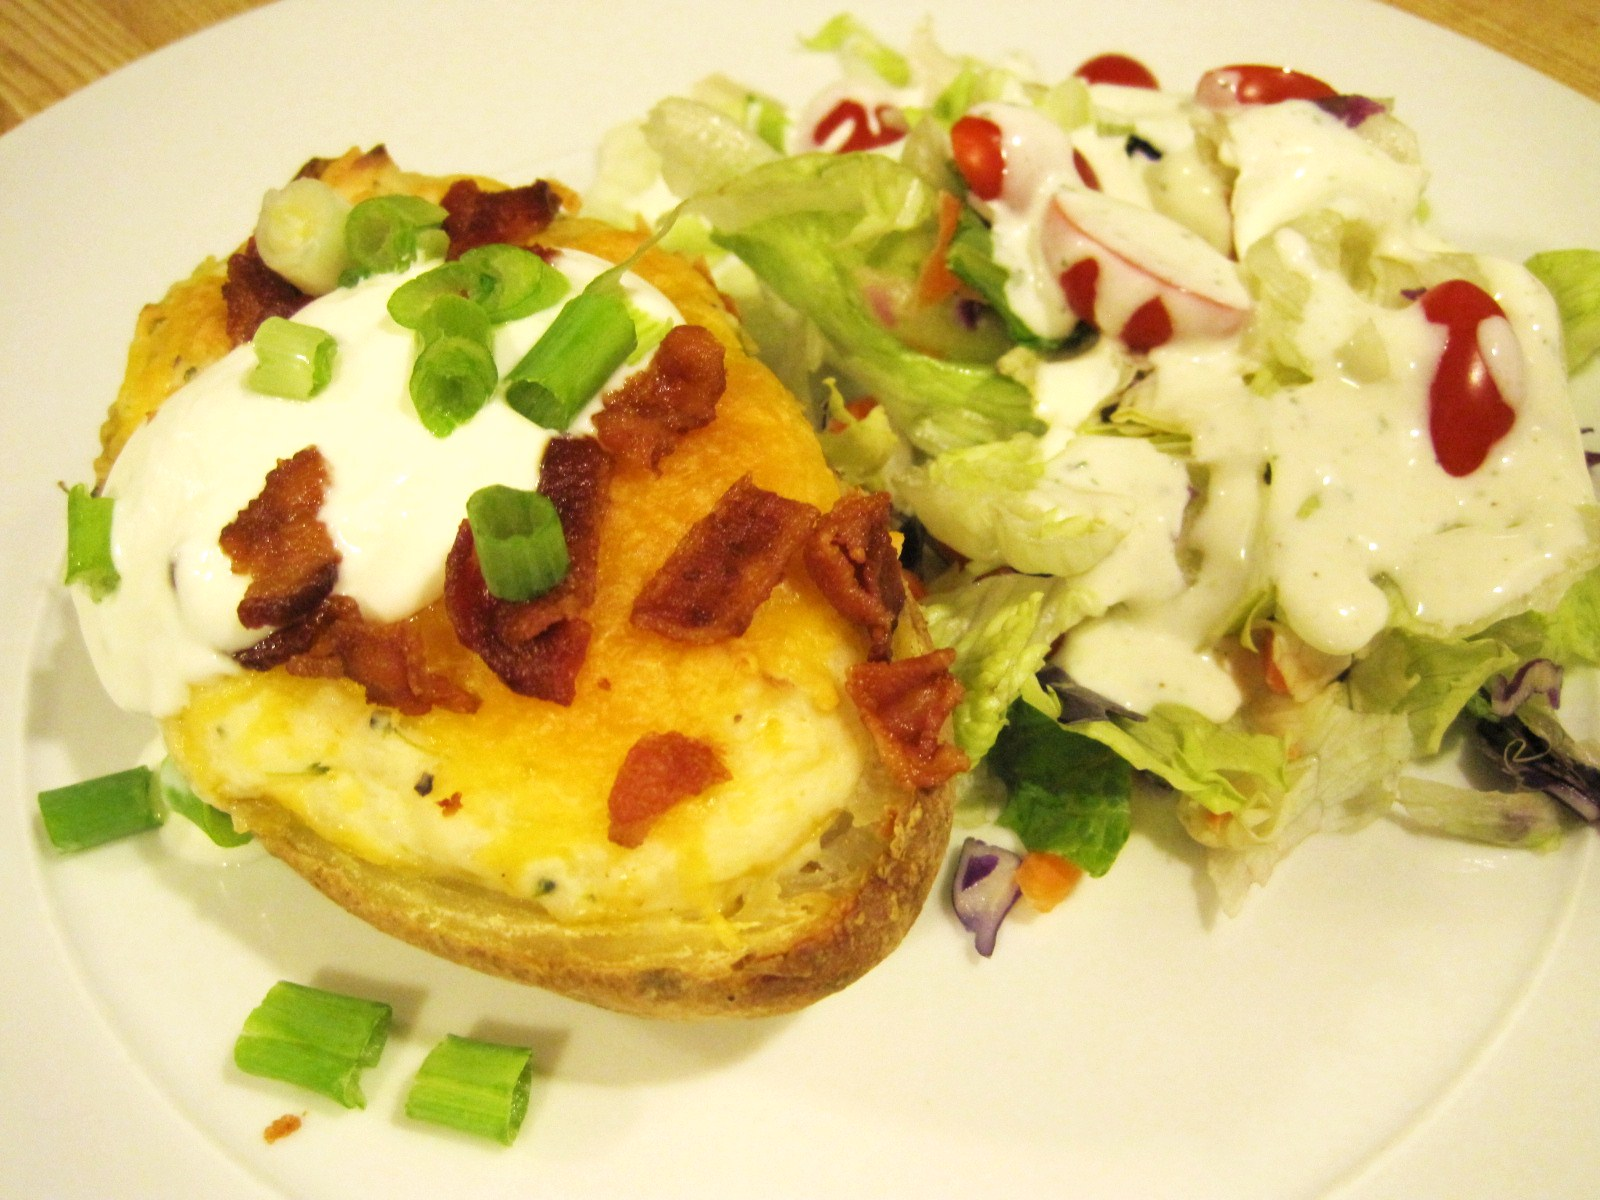 Nickel's Worth of News: Loaded Twice Baked Potatoes